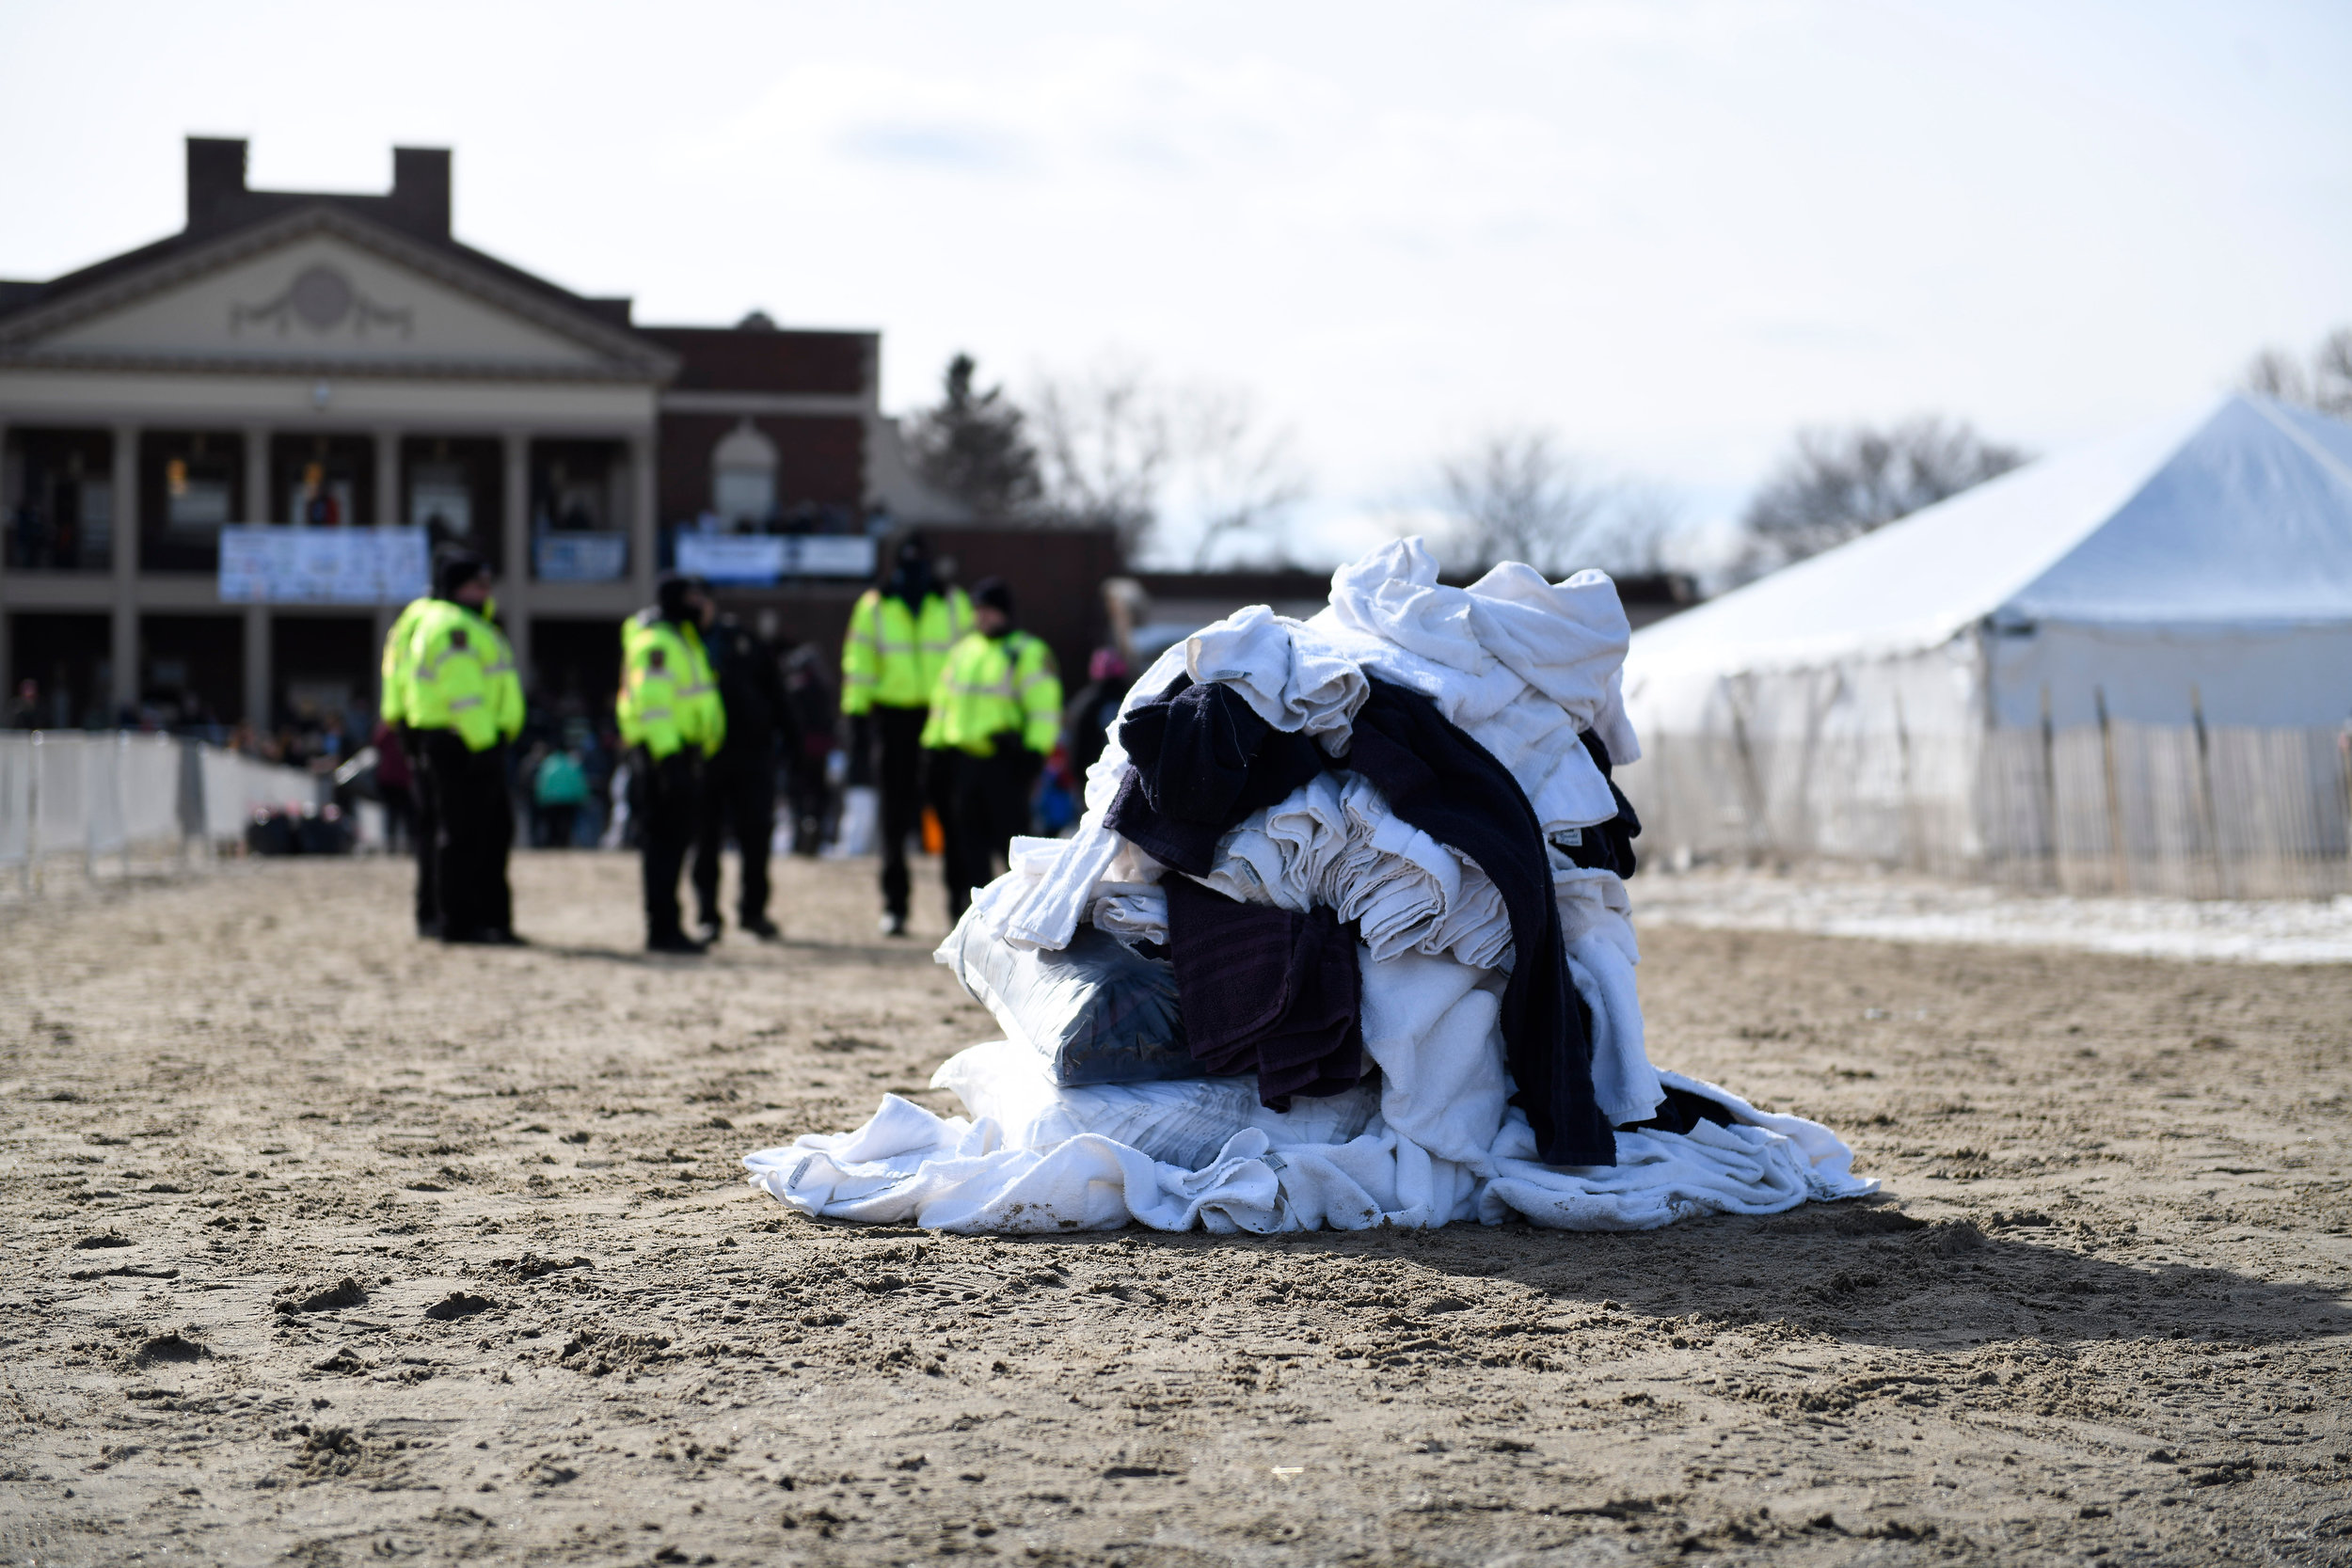 A pile of used towels lays on the beach after the 2019 Polar Plunge in Rochester, N.Y. on Feb. 10, 2019. The 2019 Polar Plunge raised over $250,000 for the Special Olympic community.